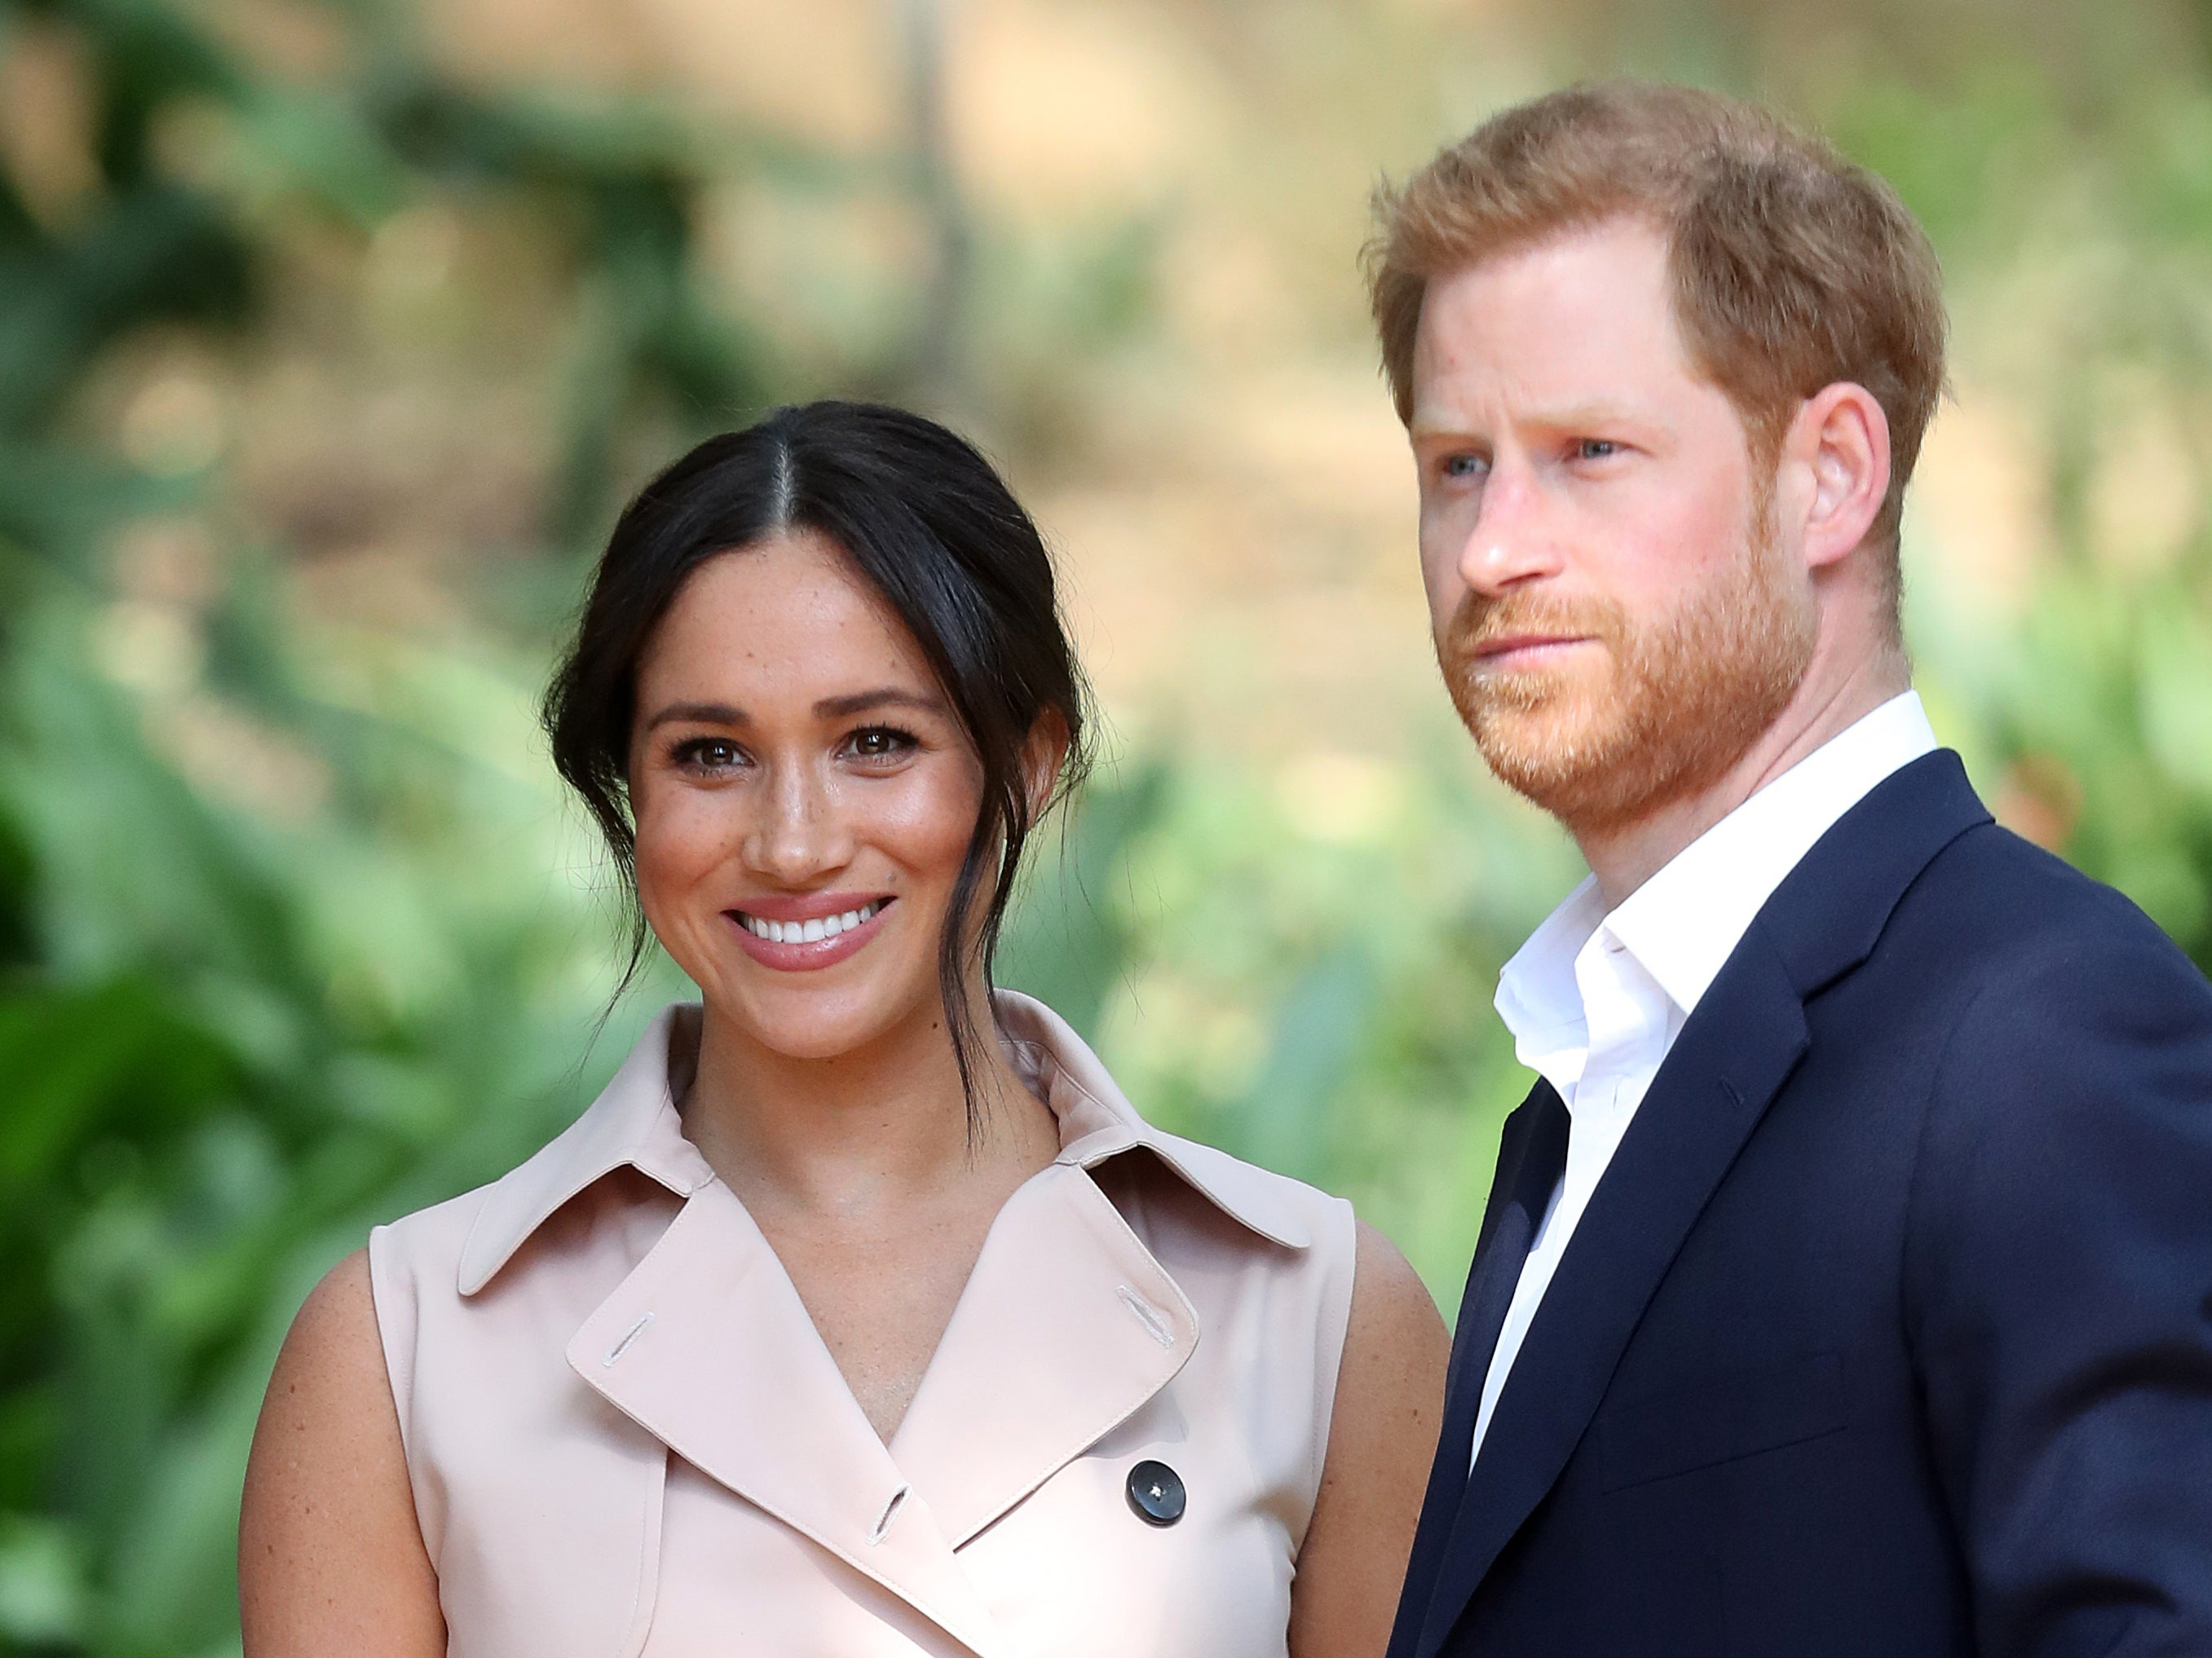 Harry and Meghan's Africa tour cost taxpayers £245,000